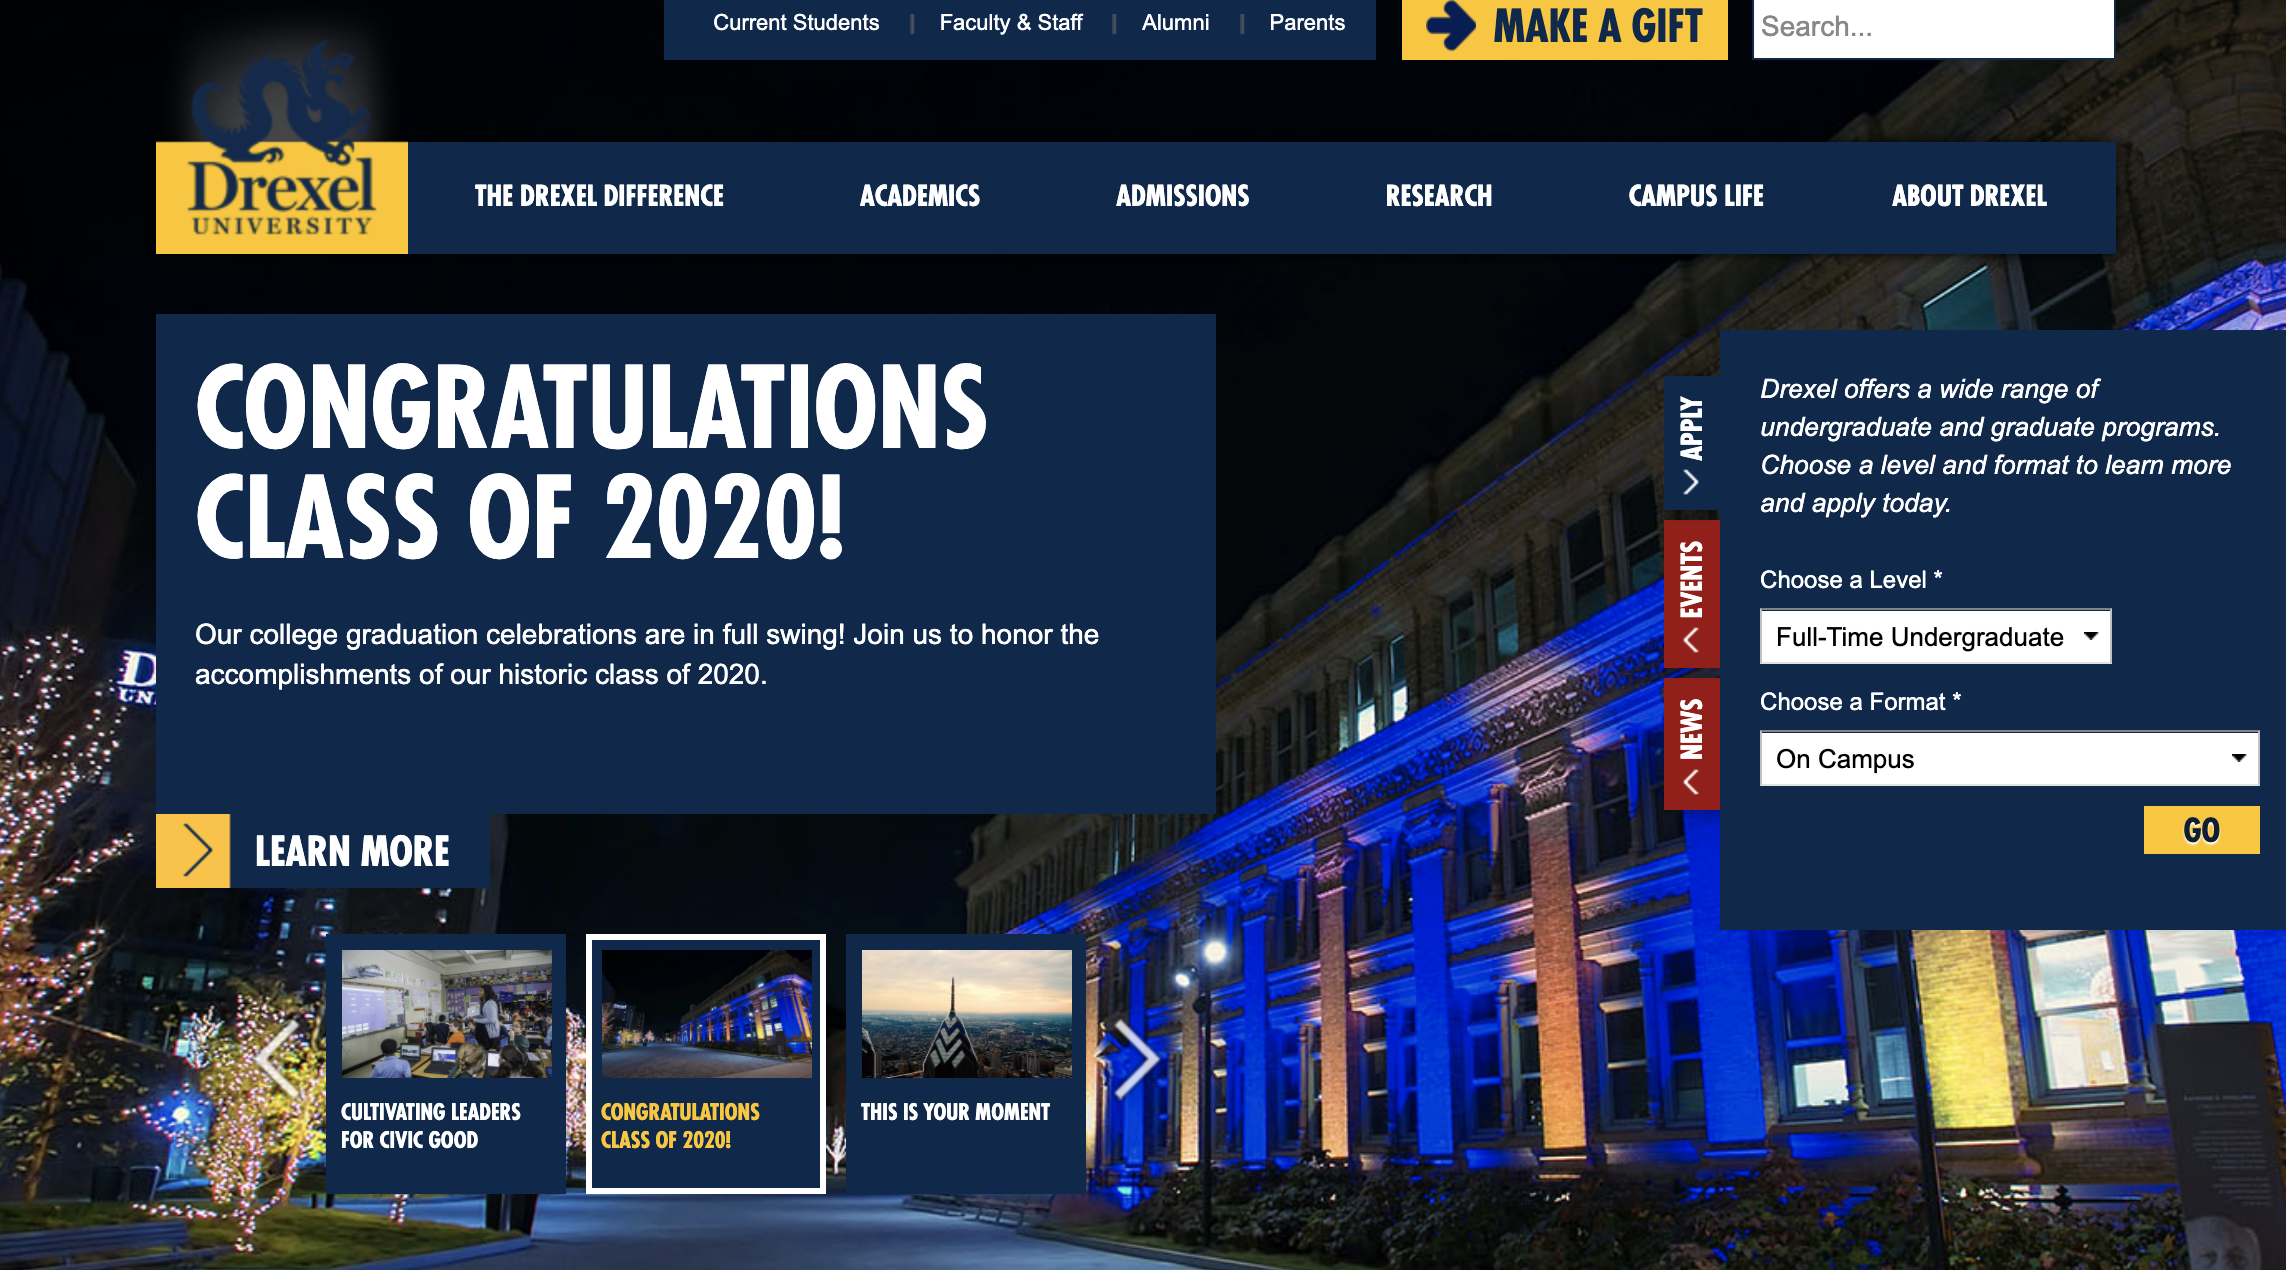 Drexel University website header